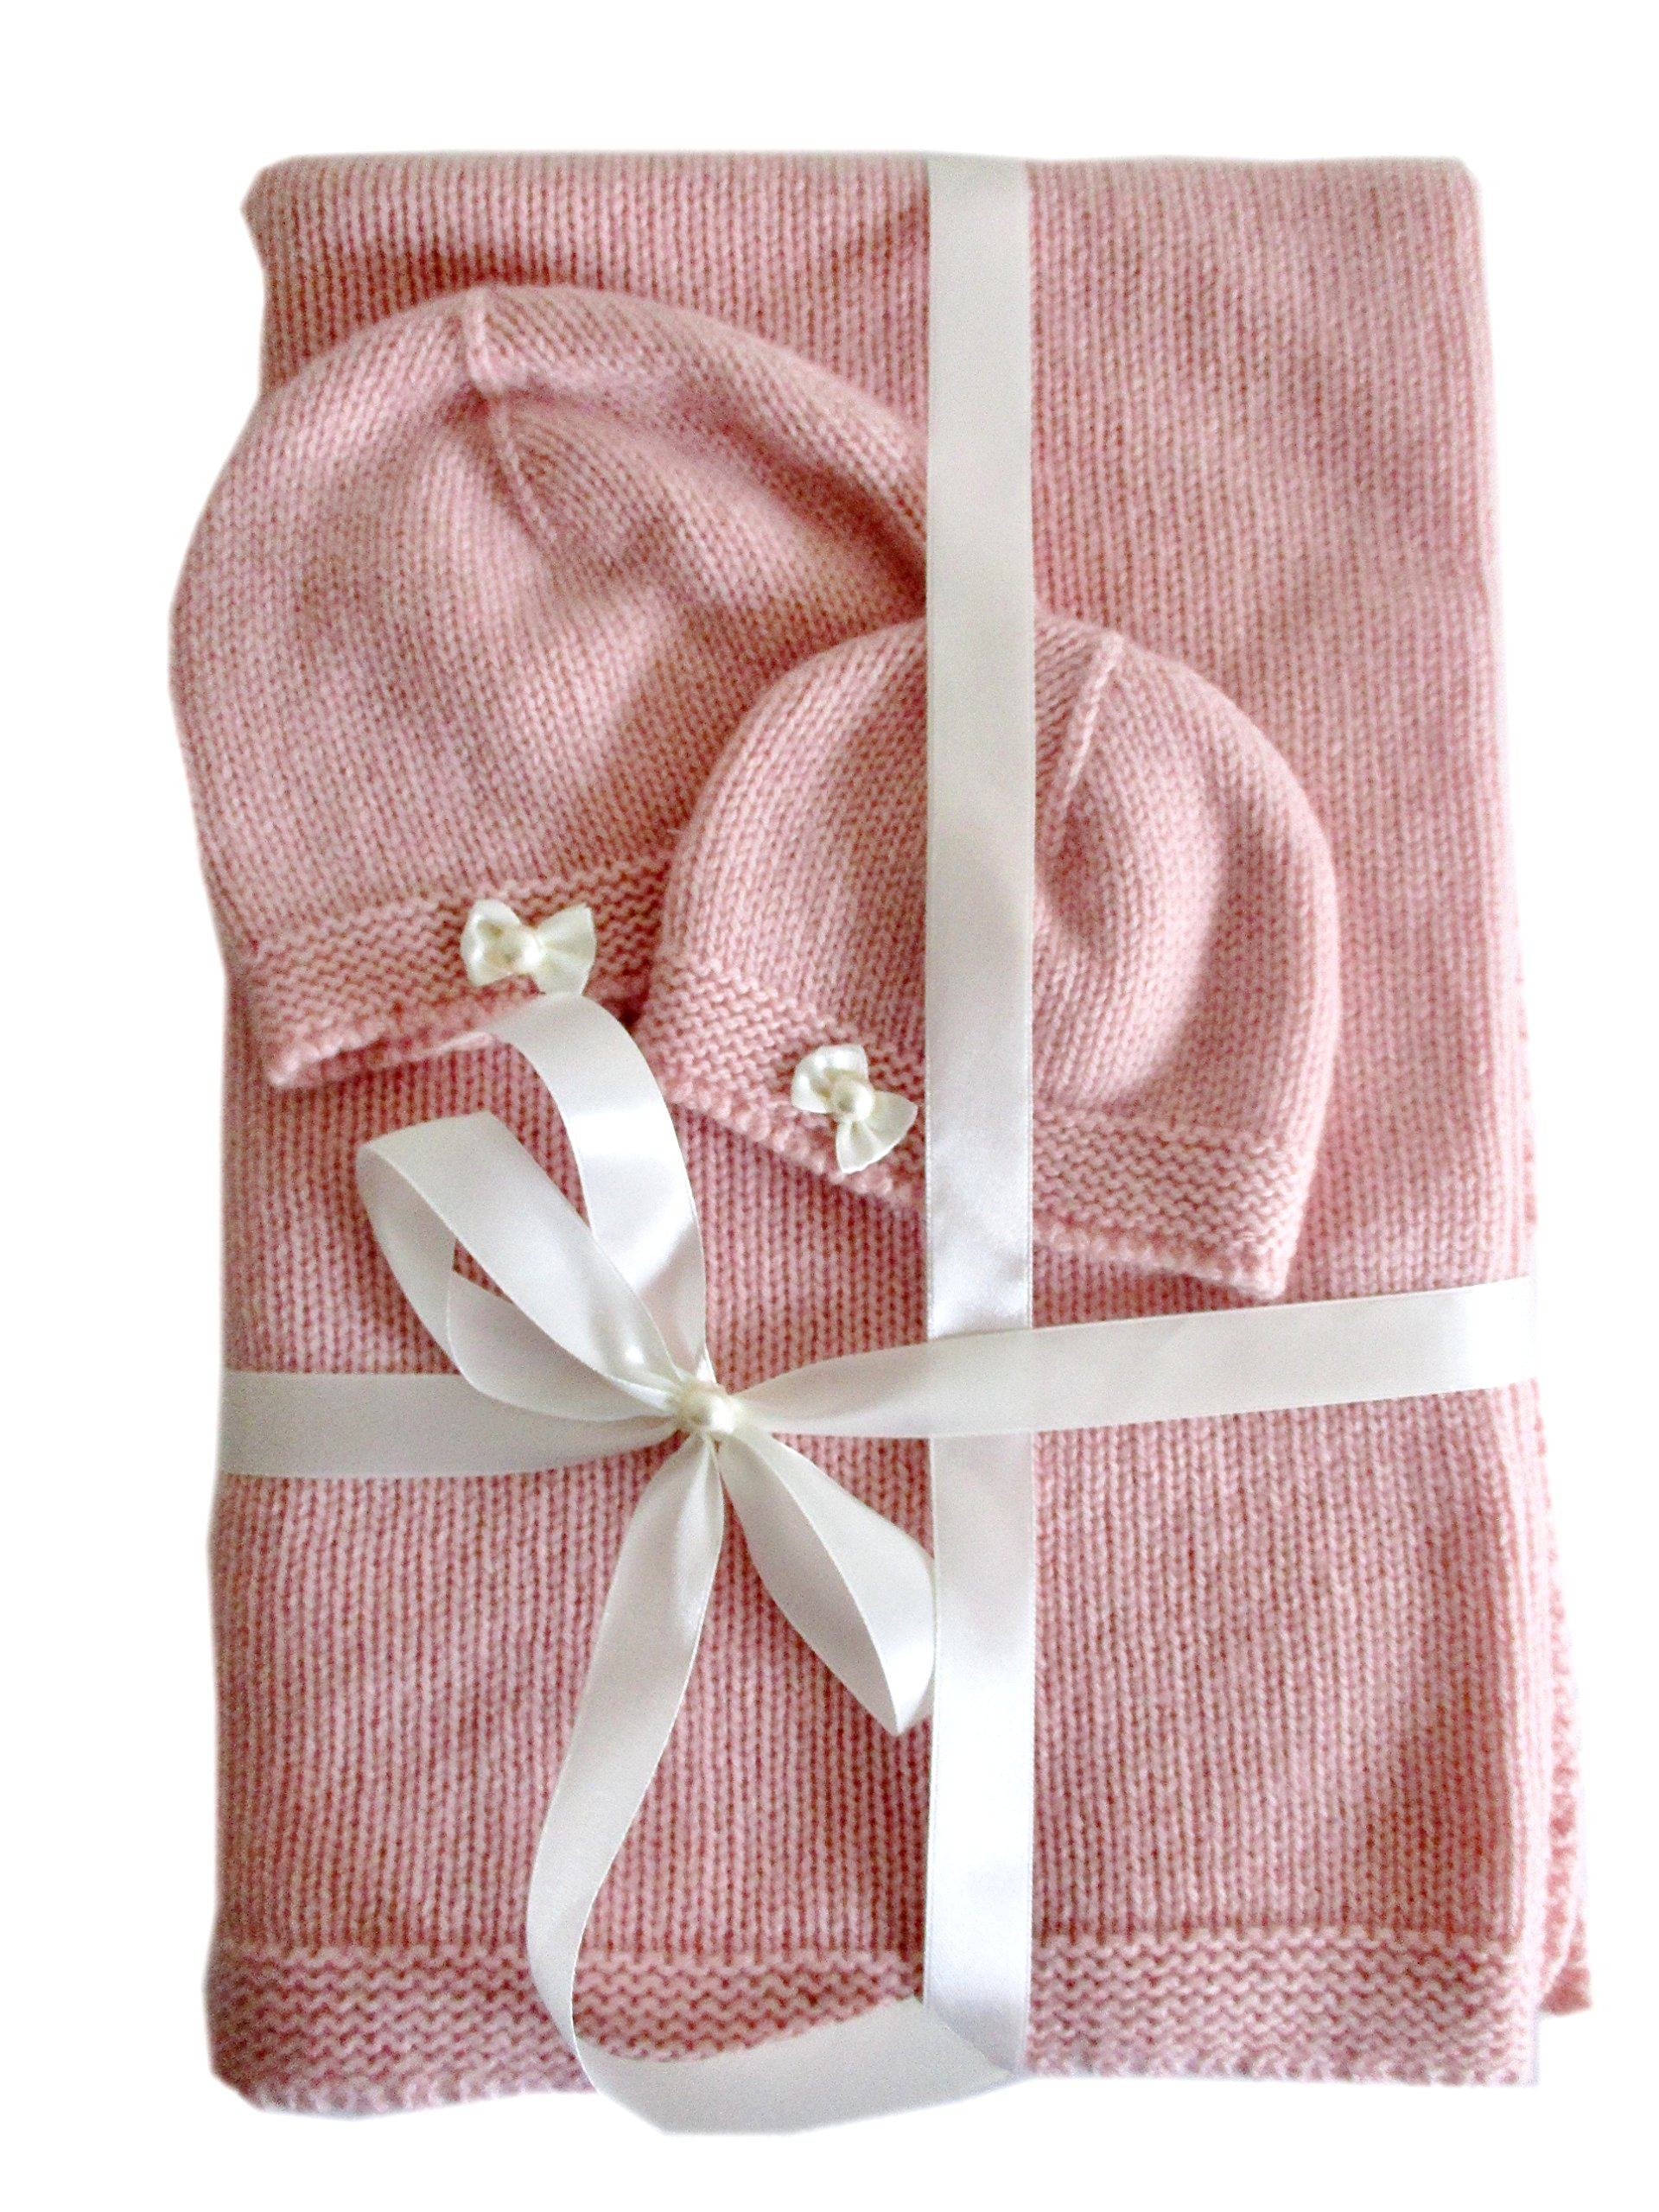 Frost Hats Cashmere Baby Blanket and Hats Set Little Bows Pink